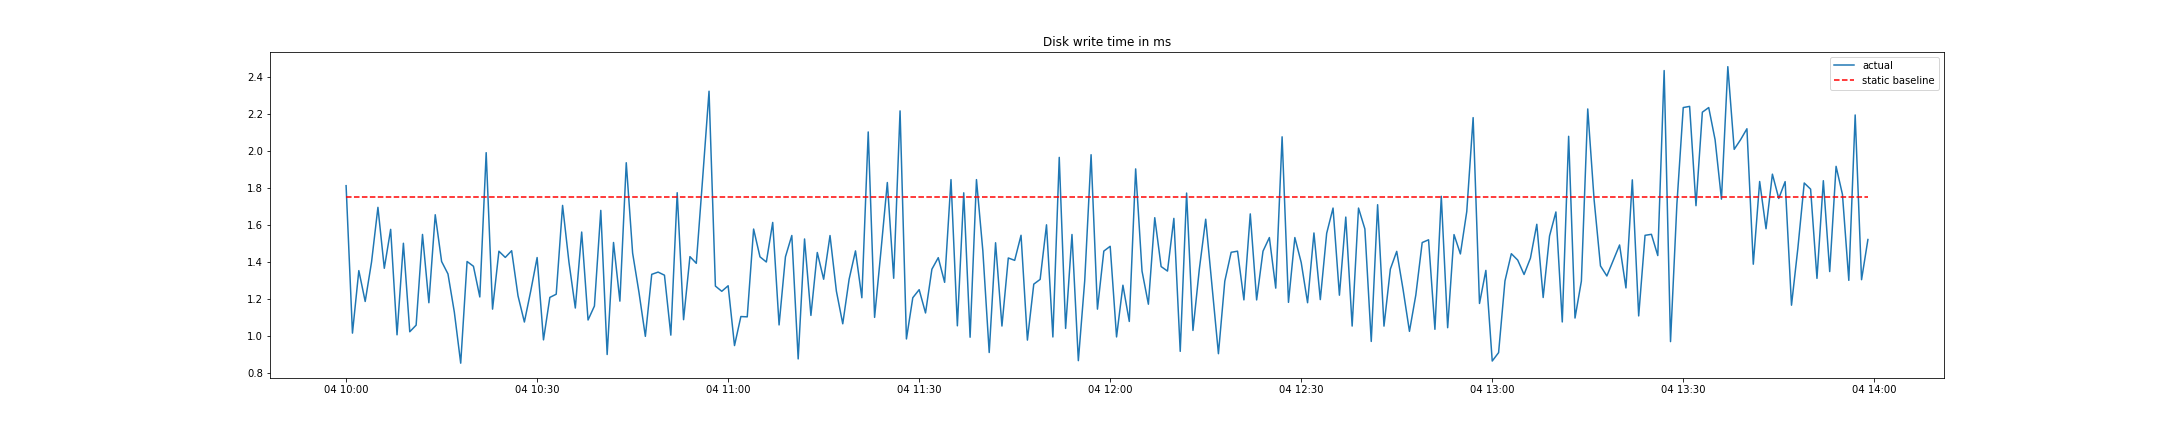 Disk write times with static baseline